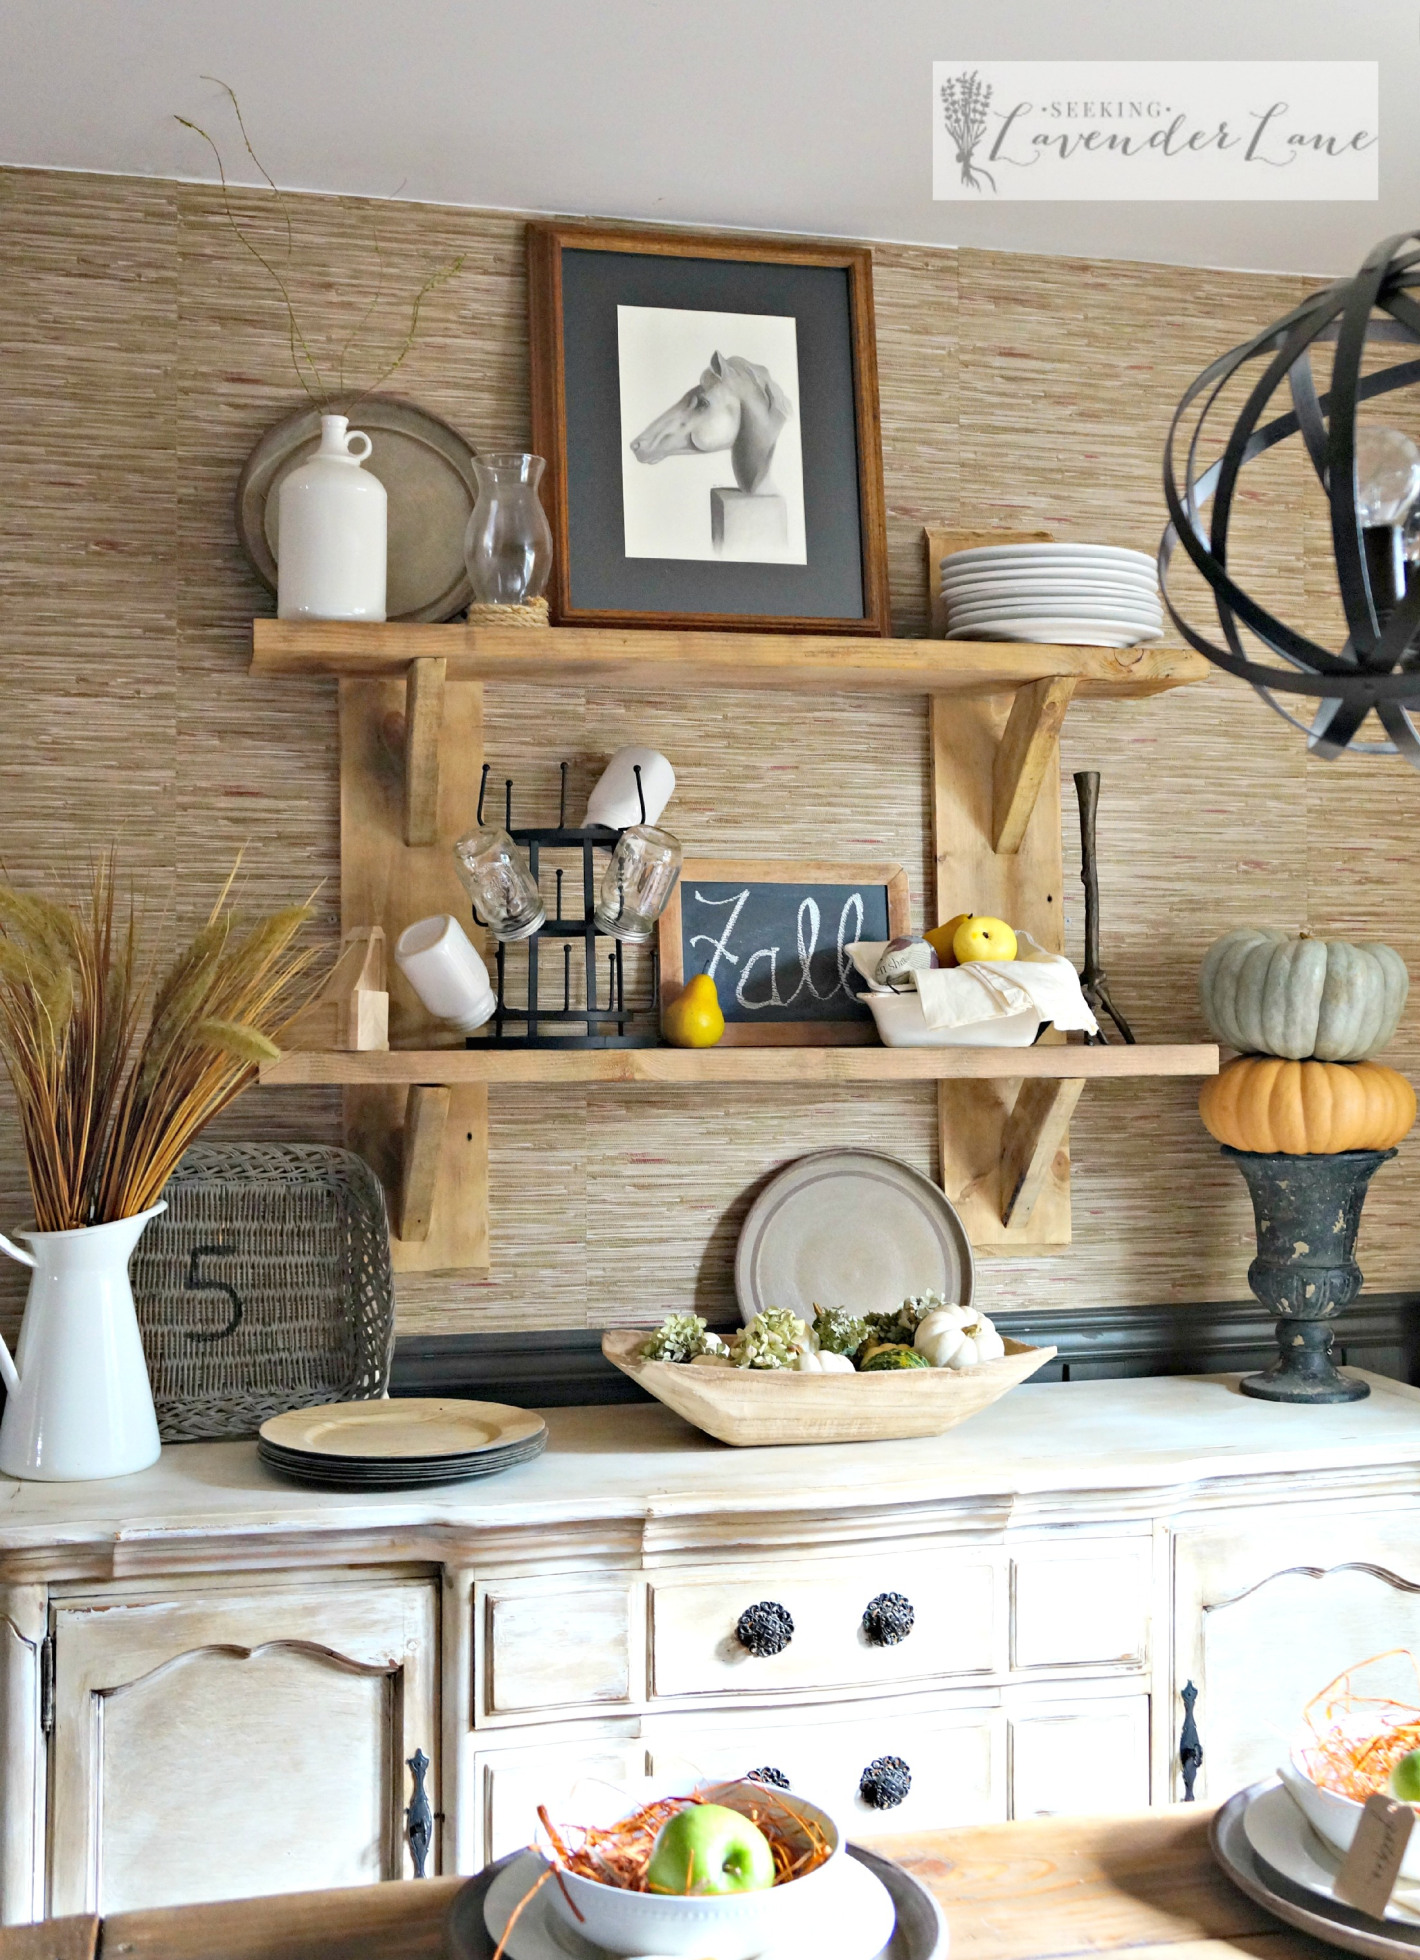 Stta-Link-Party-43-Diy-Rustic-Floating-Shelves